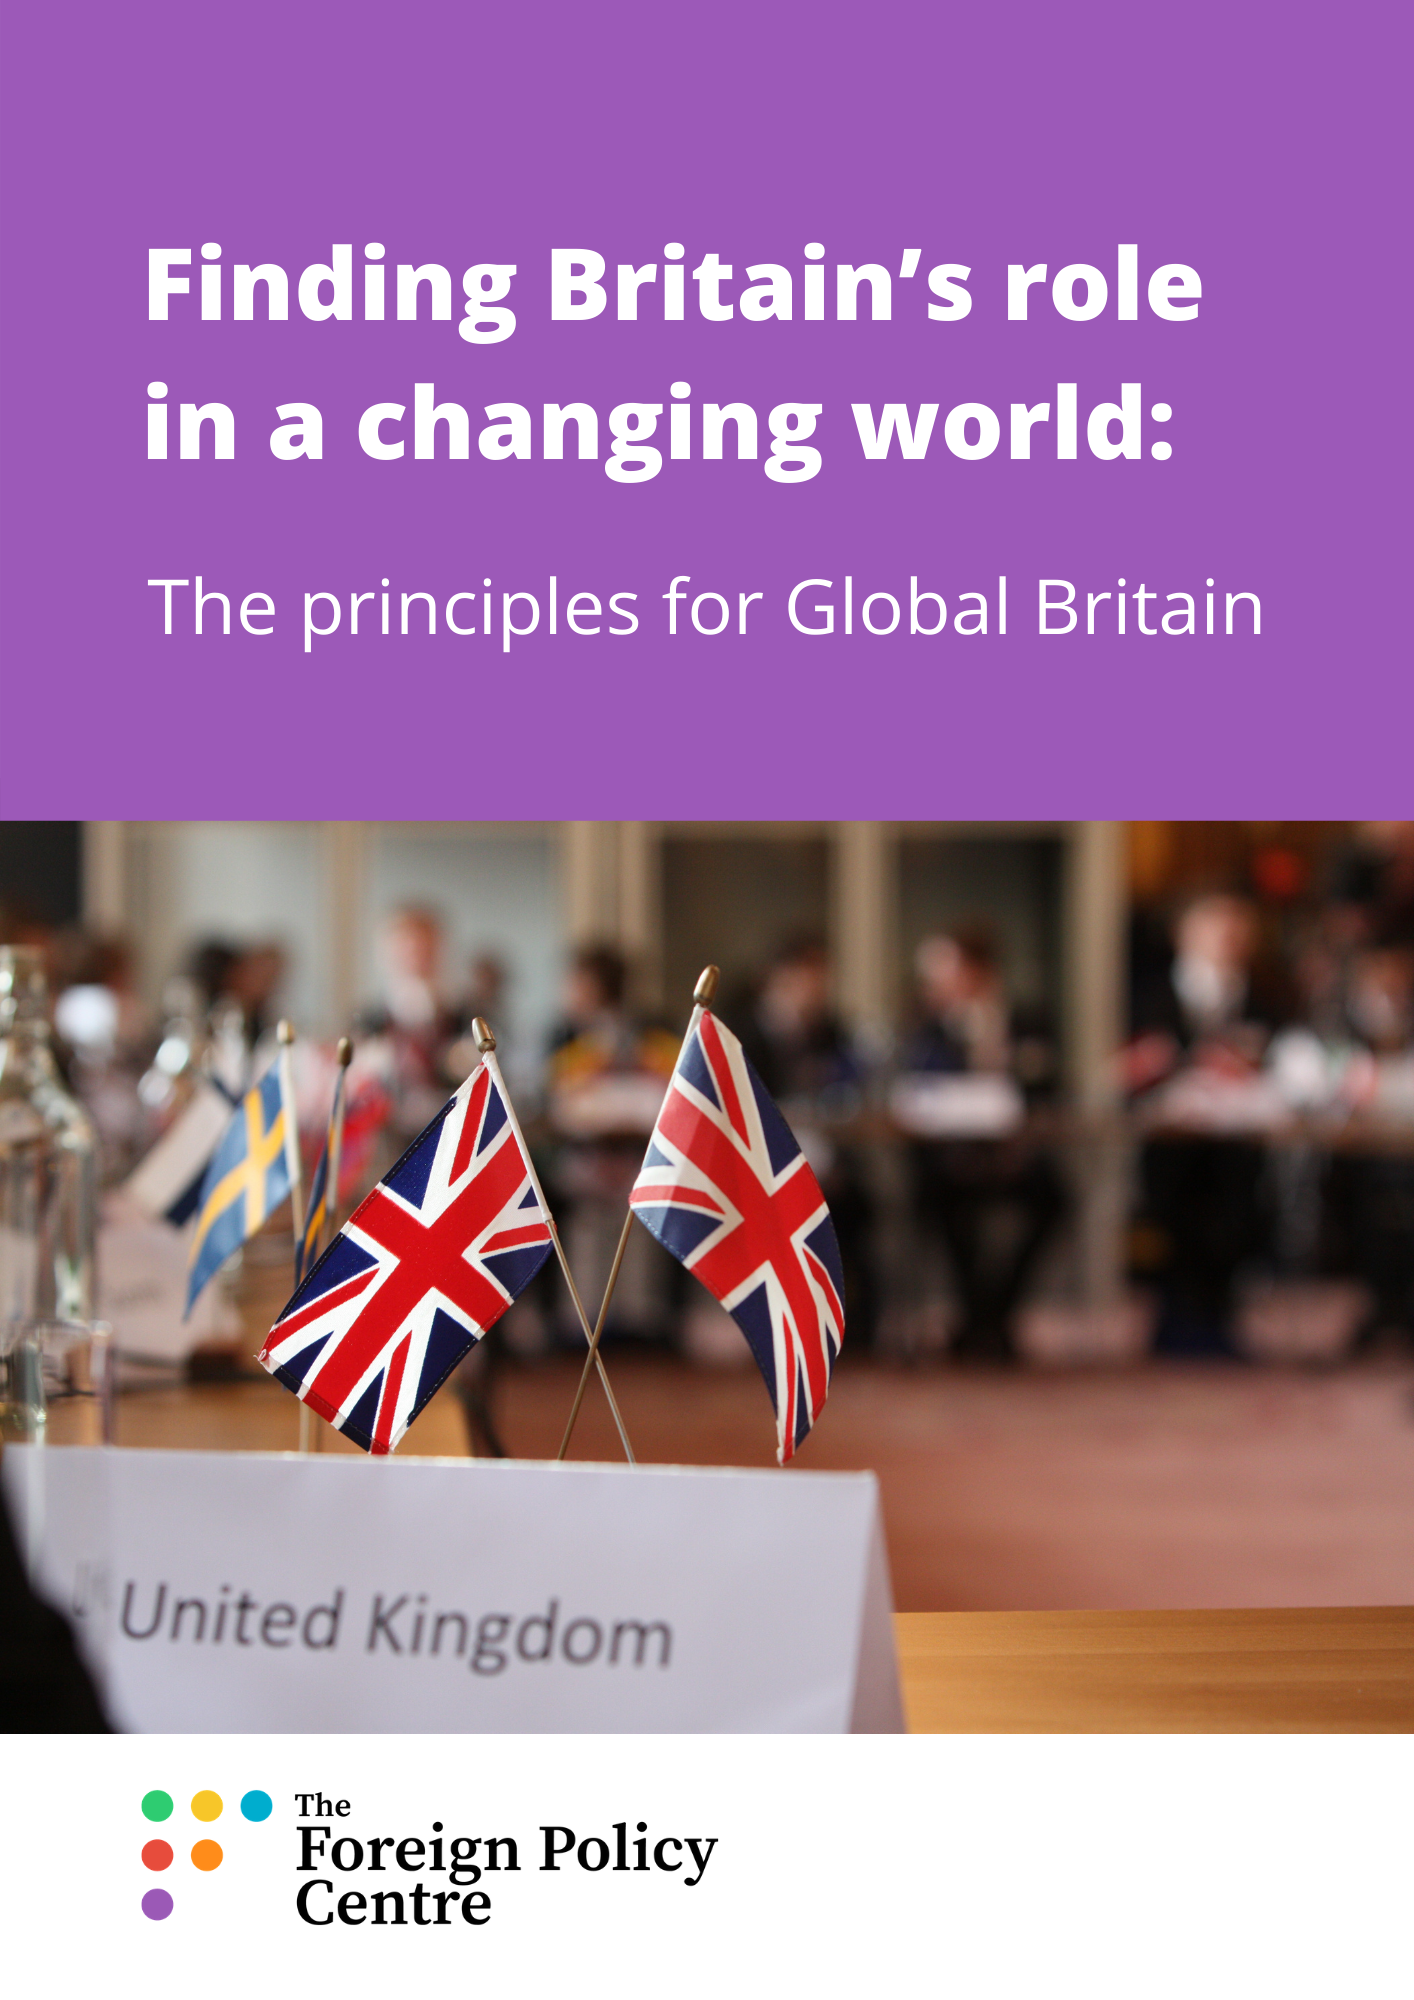 The principles for Global Britain